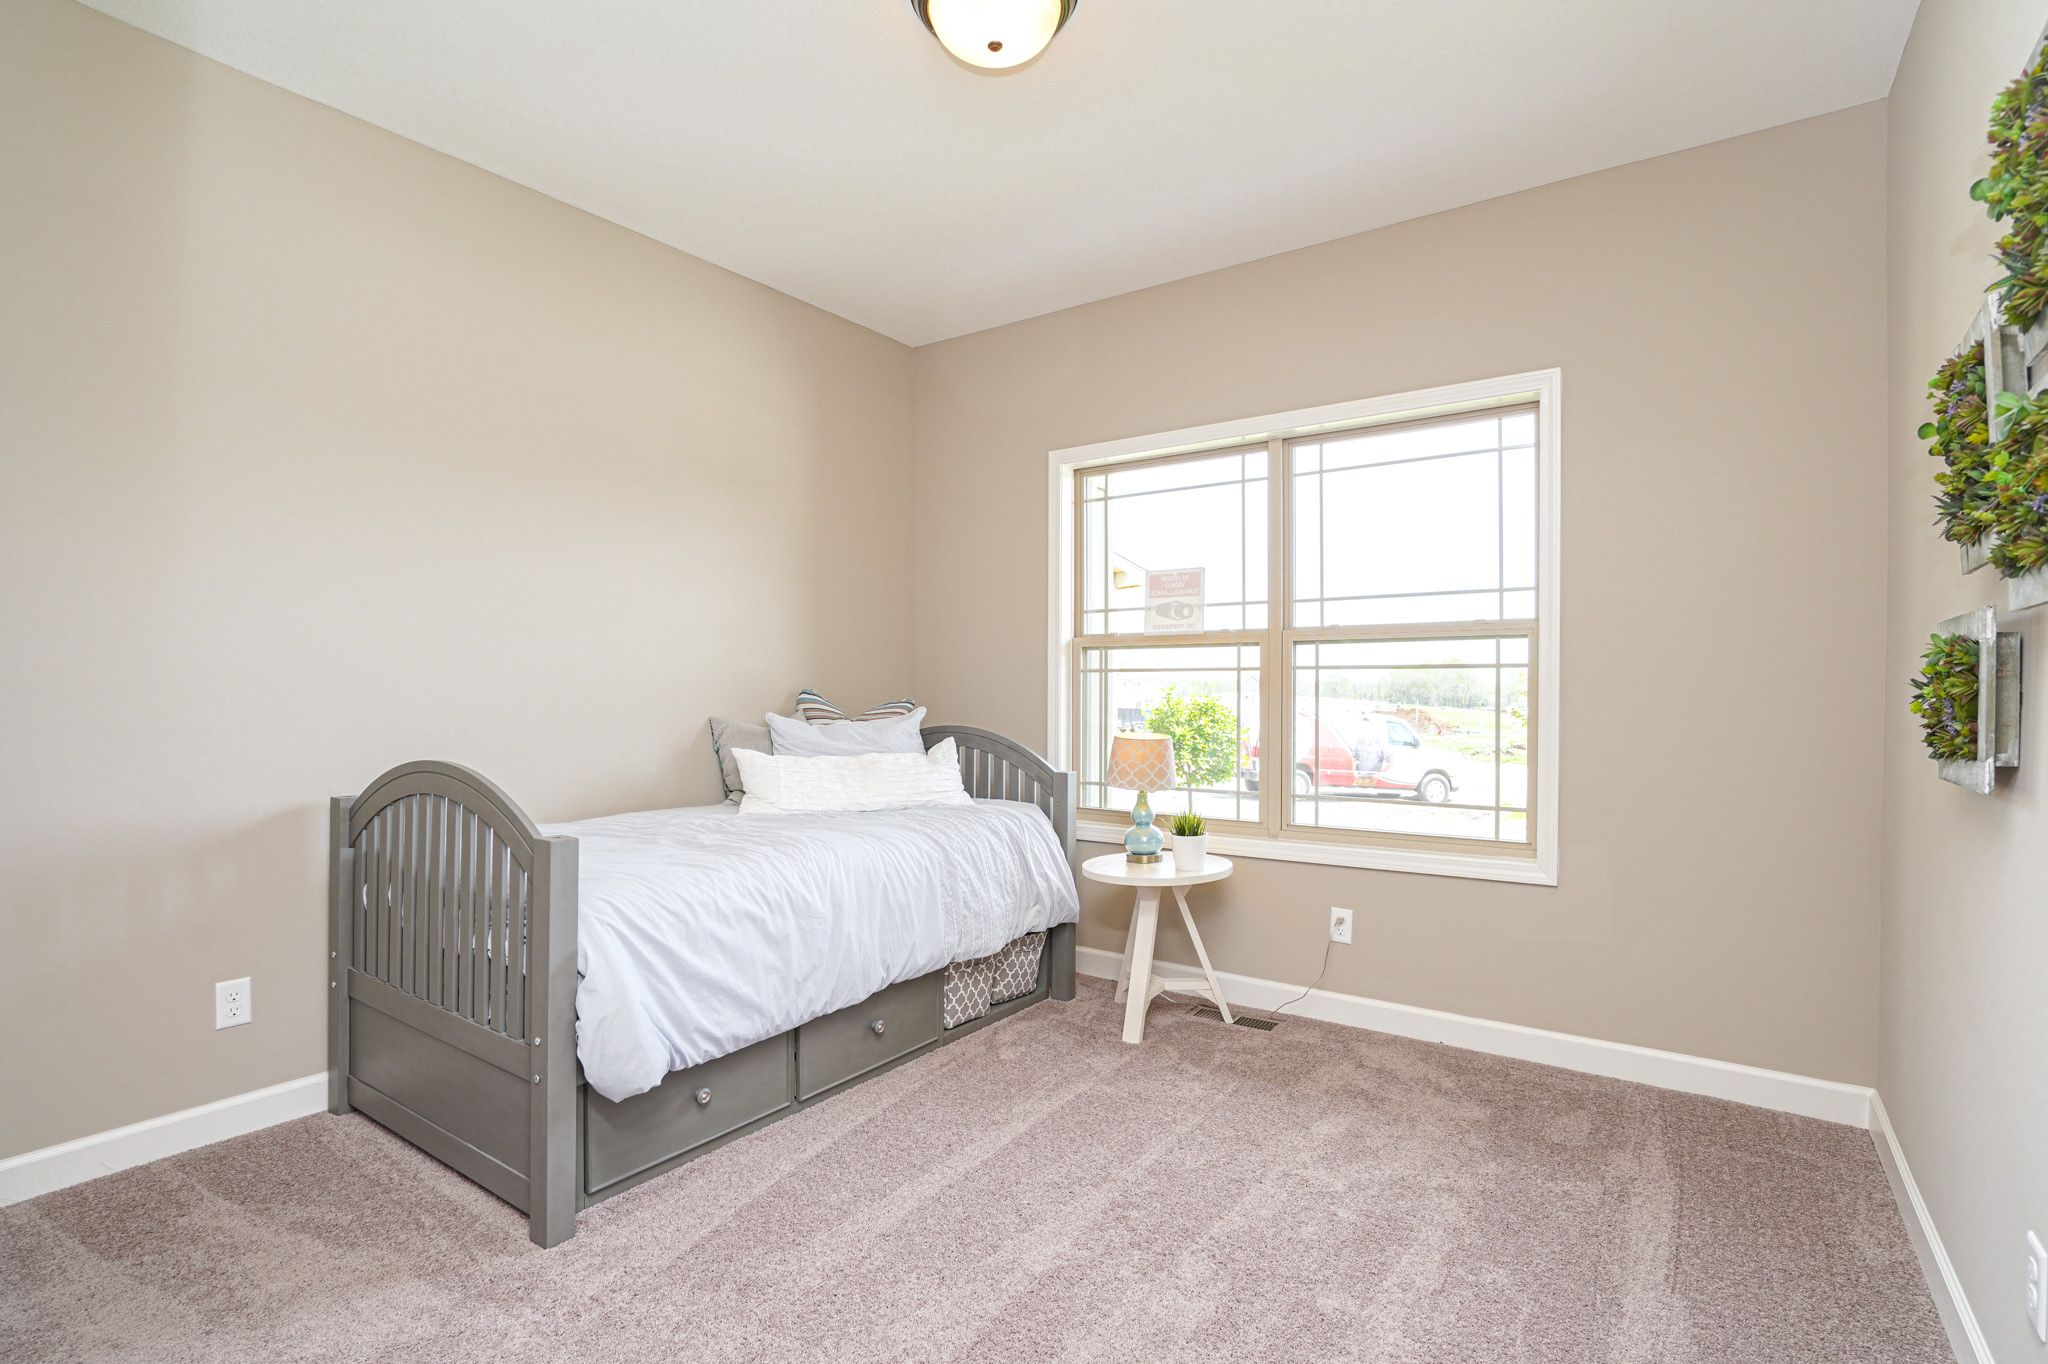 Bedroom featured in the Charlotte - IA By Summit Homes in Des Moines, IA